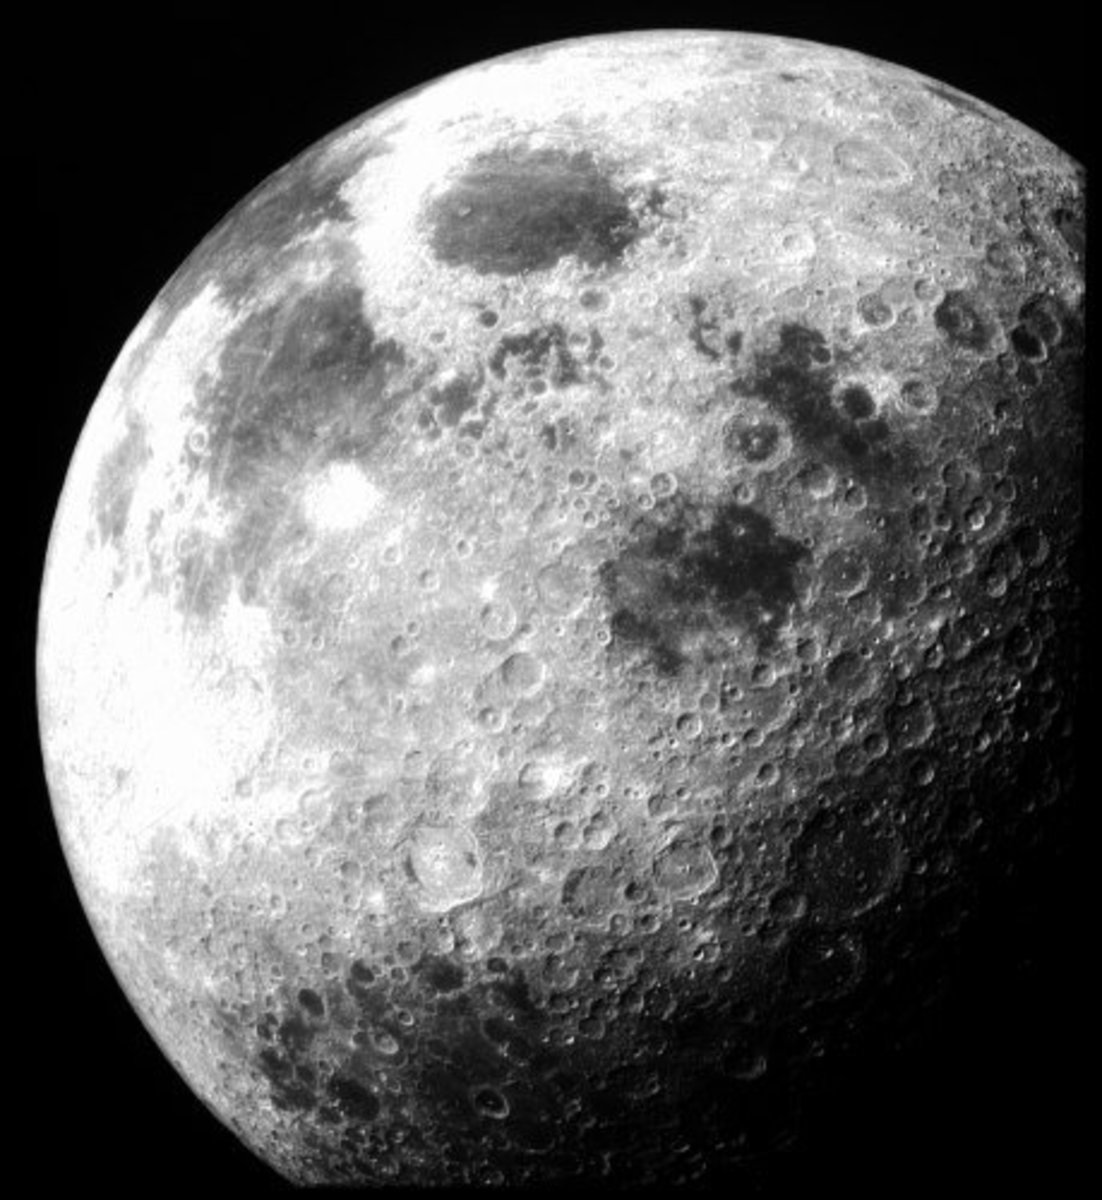 According to Hollow Moon Theory, the most interesting part of our moon may be inside.